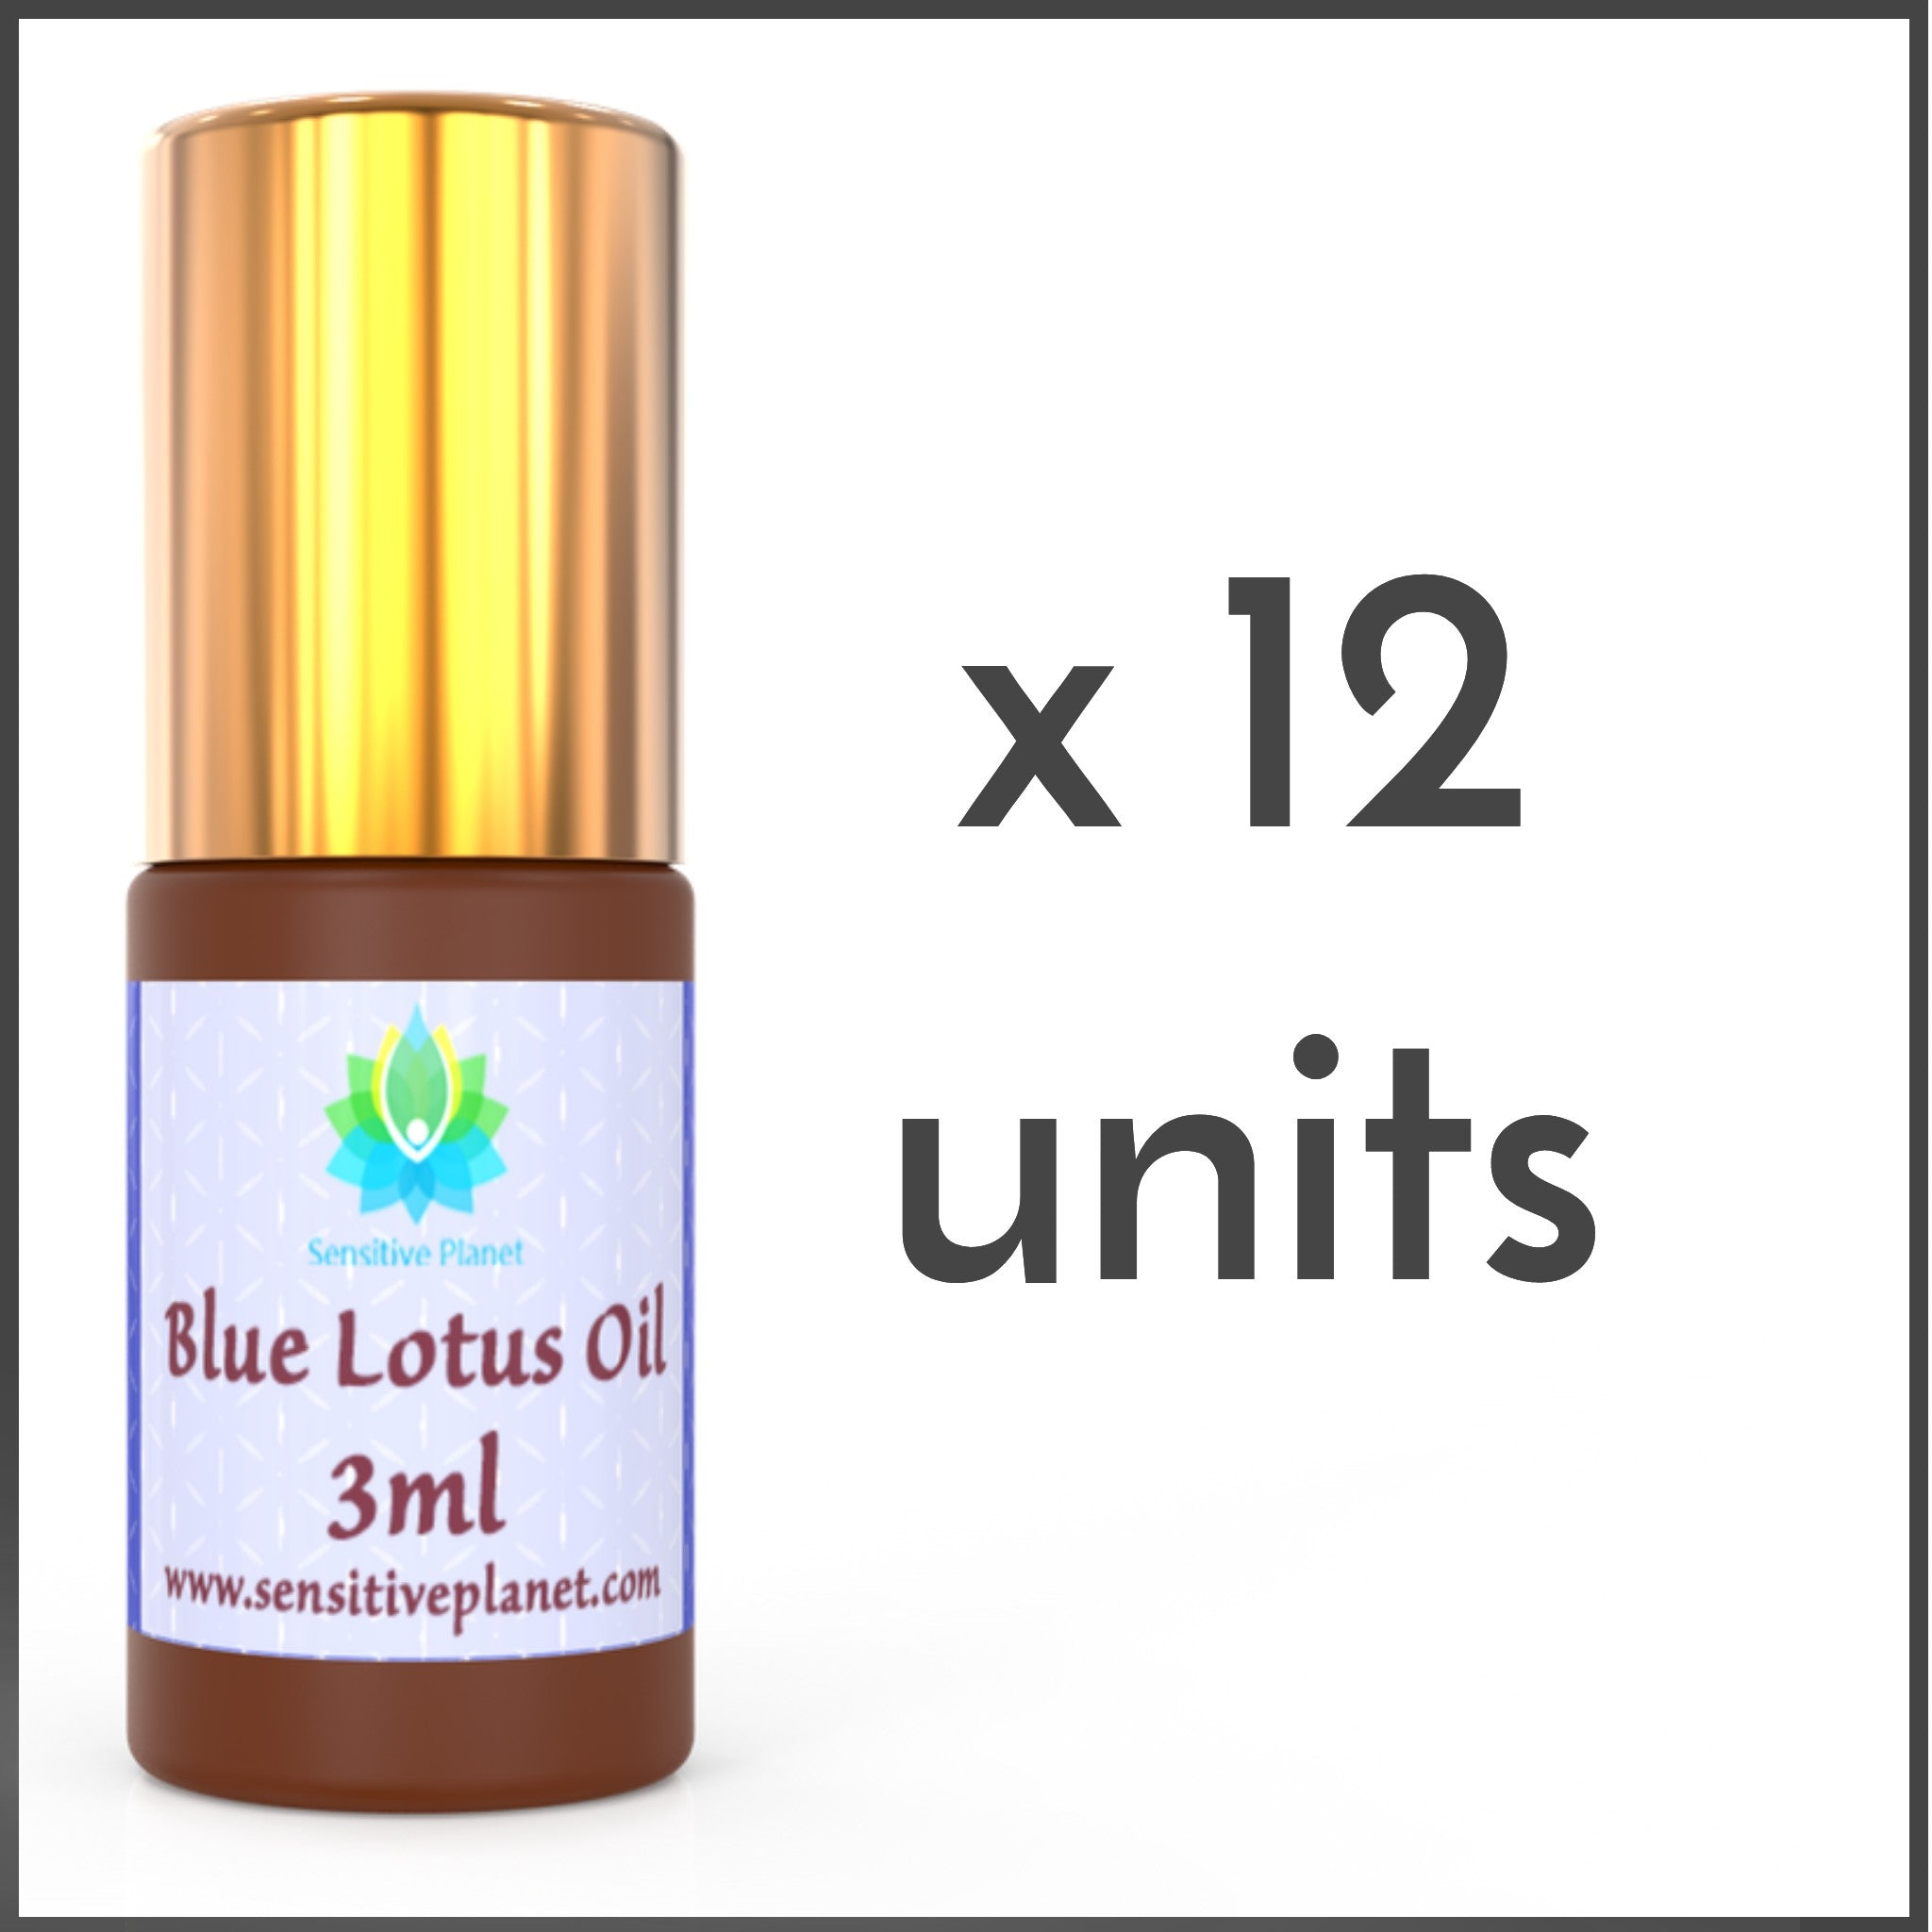 (12 UNITS) Wholesale-  3ml Blue Lotus Oil @ $17/unit